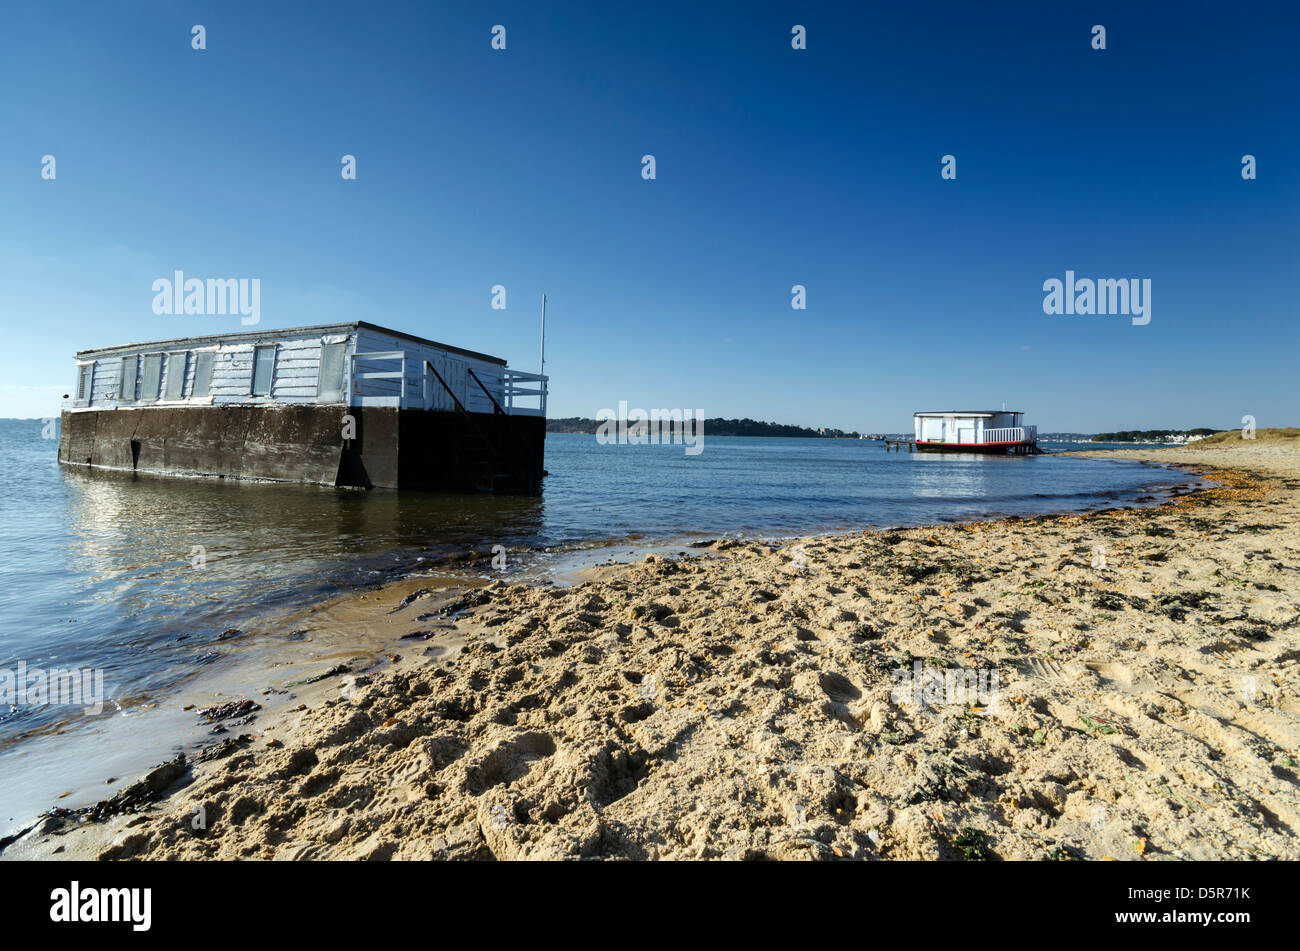 House boat on the beach at Studland in Poole Harbour in Dorset - Stock Image